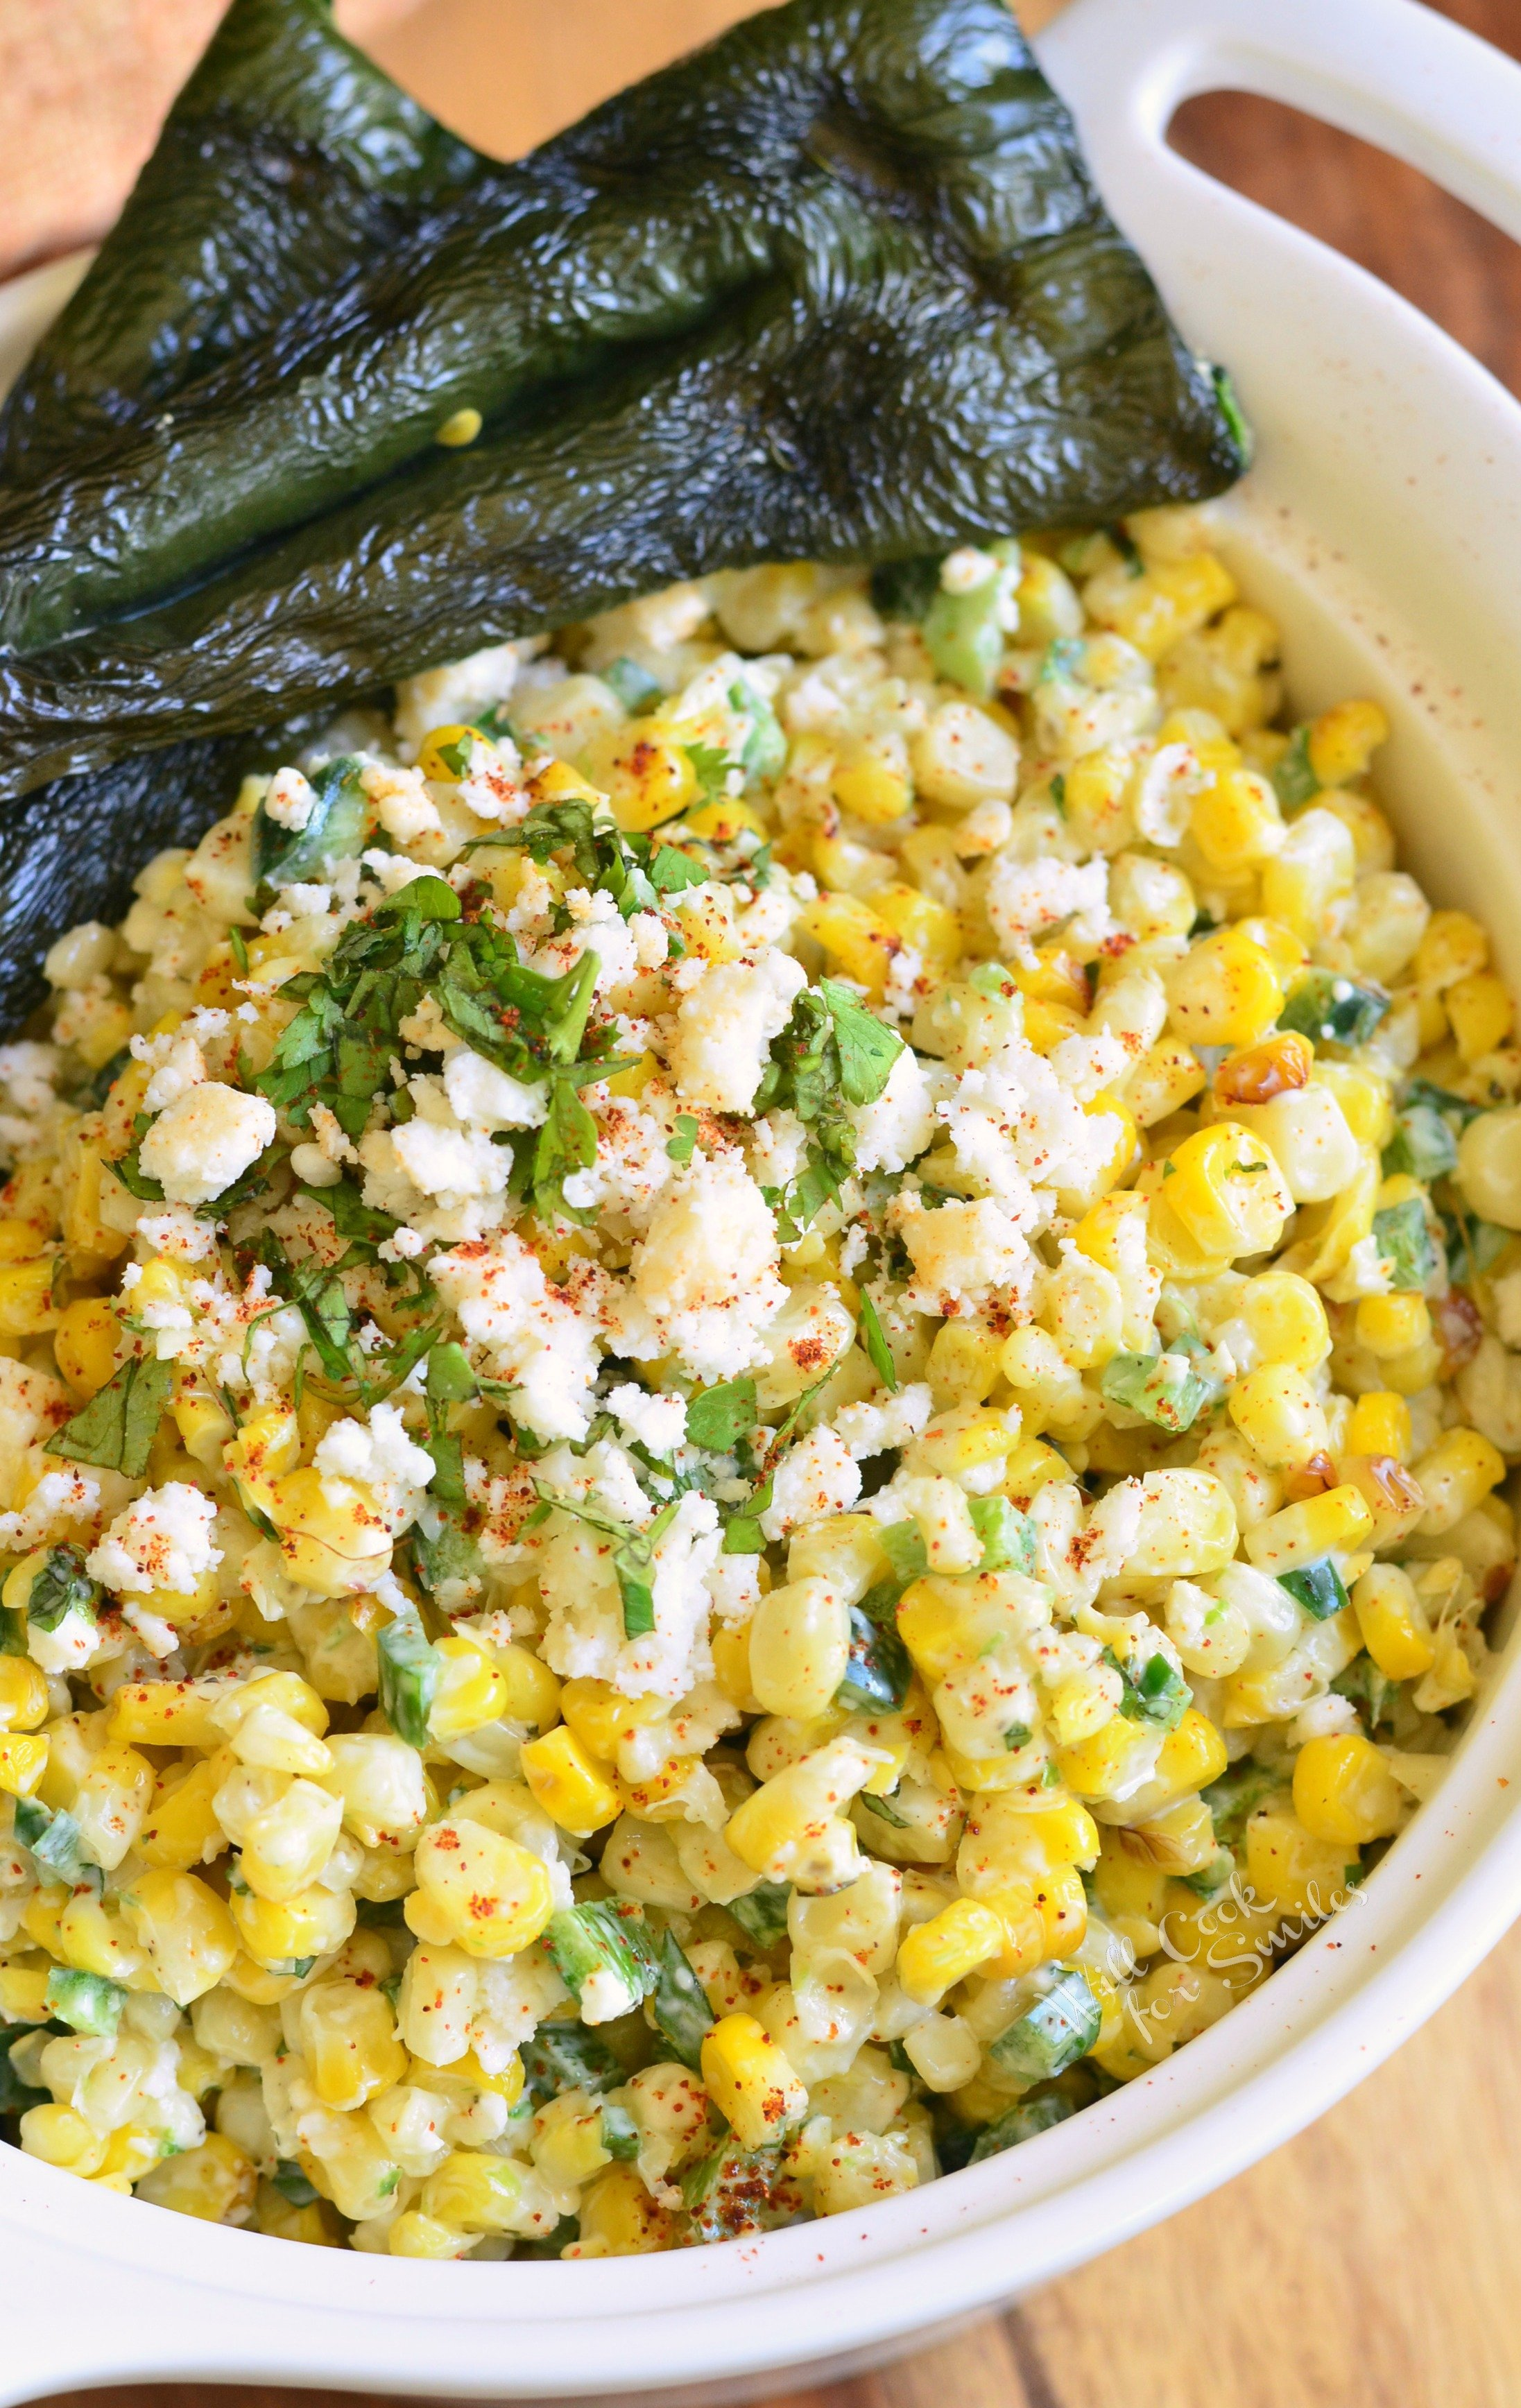 top view of corn salad with white crumbled cheese on top and grilled poblano peppers on the side